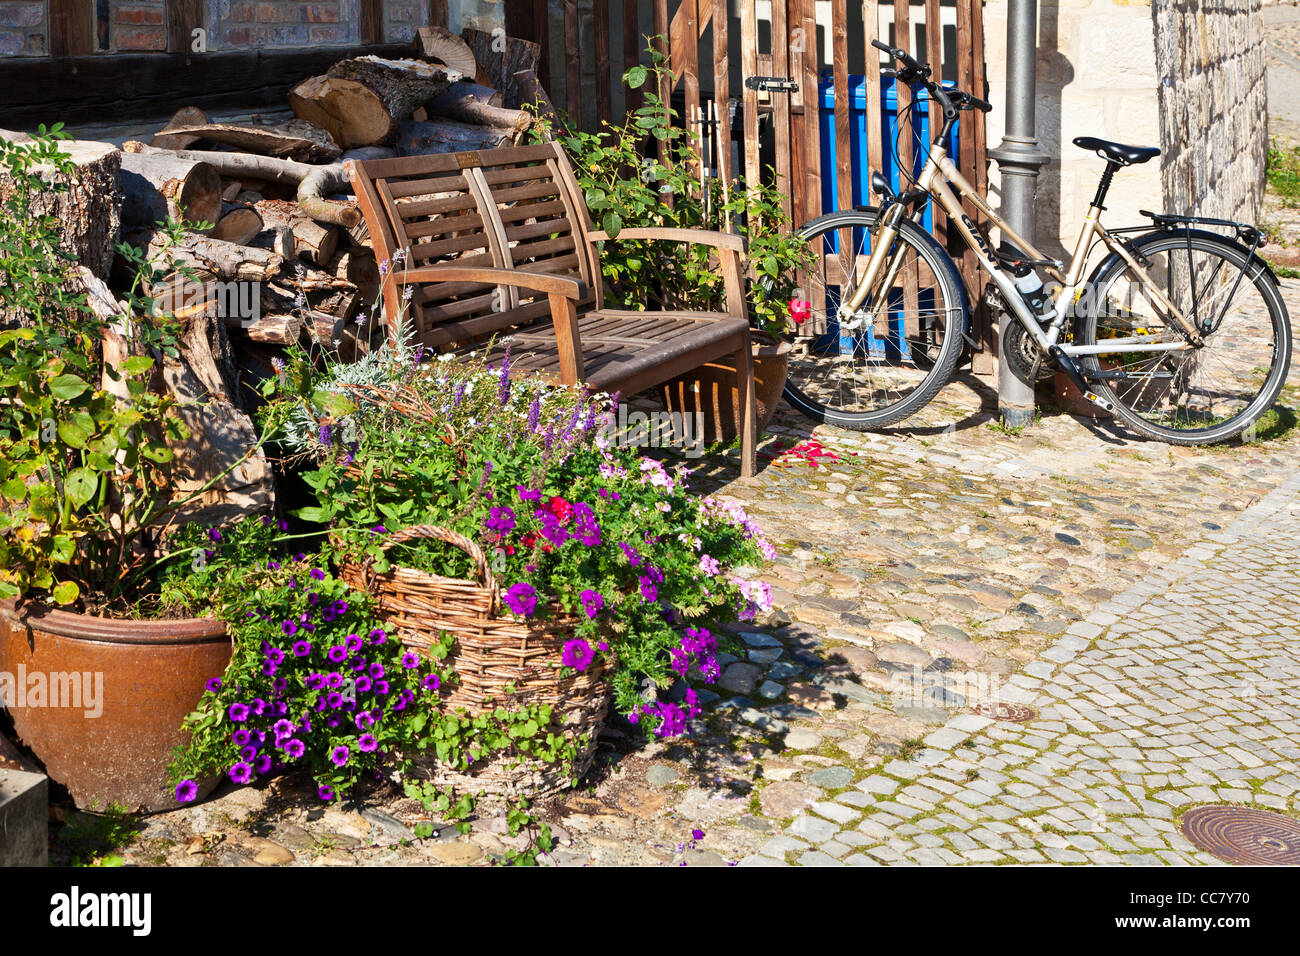 Bicycle and wooden seat outside a house in the UNESCO World Heritage town of Quedlinburg, Germany. - Stock Image